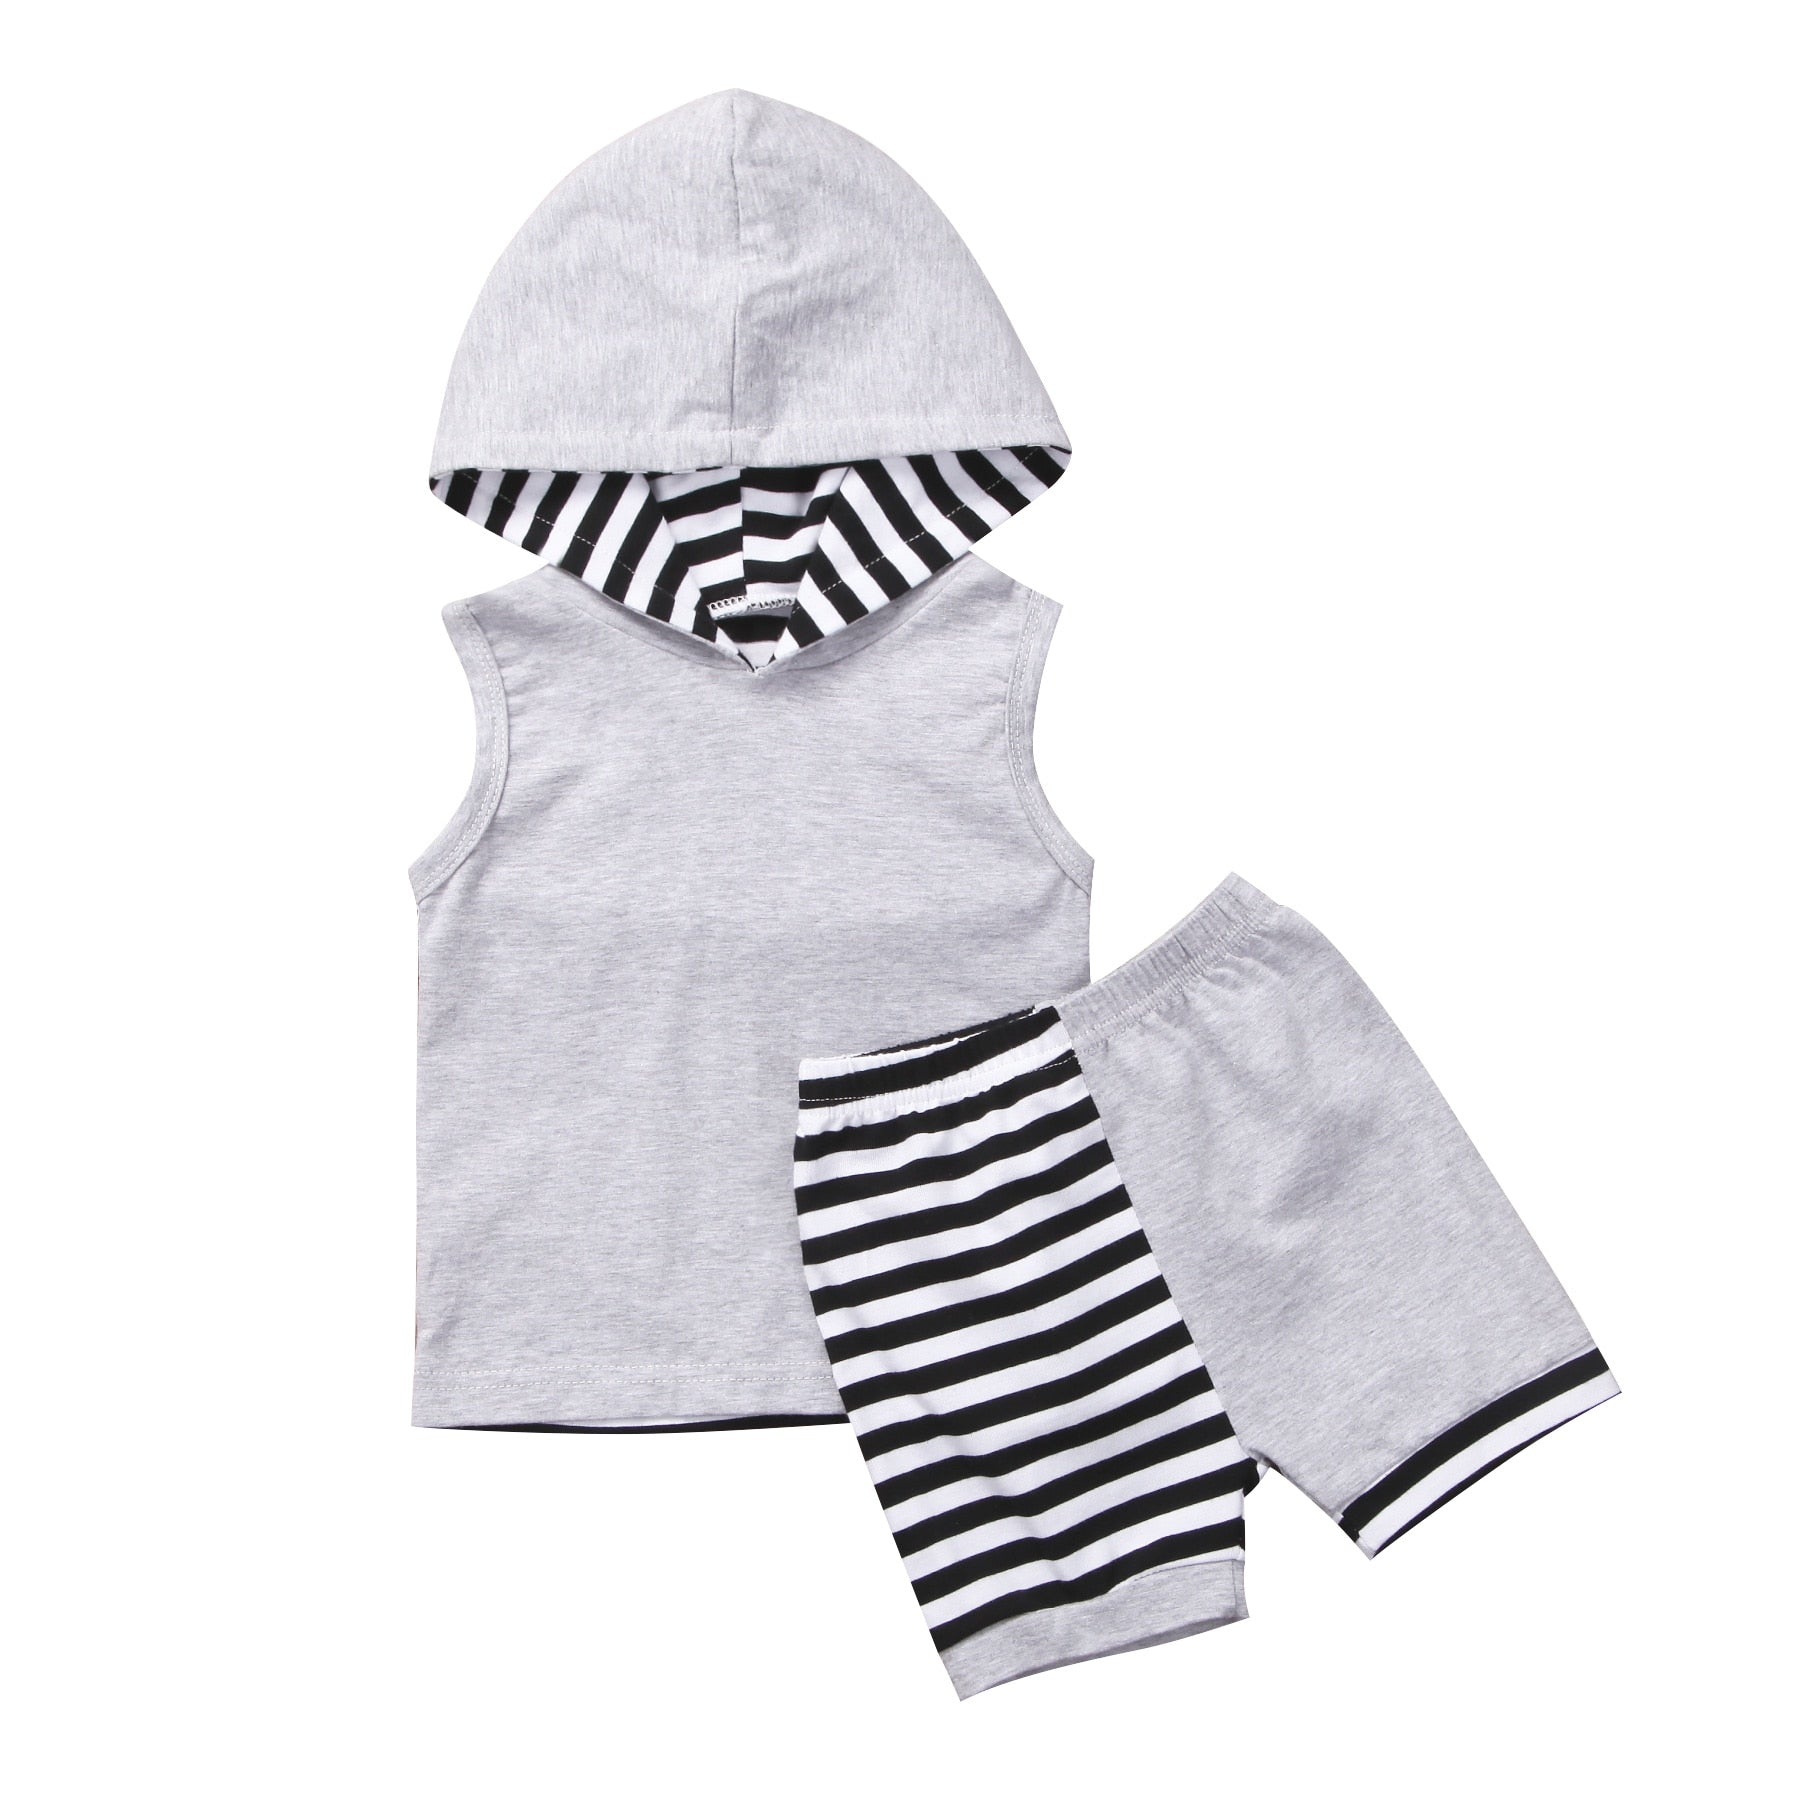 Newborn Infant Baby Boy Cotton Gray Striped Patchwork Clothes Hoodie Top +Short Pant Outfit-eosegal